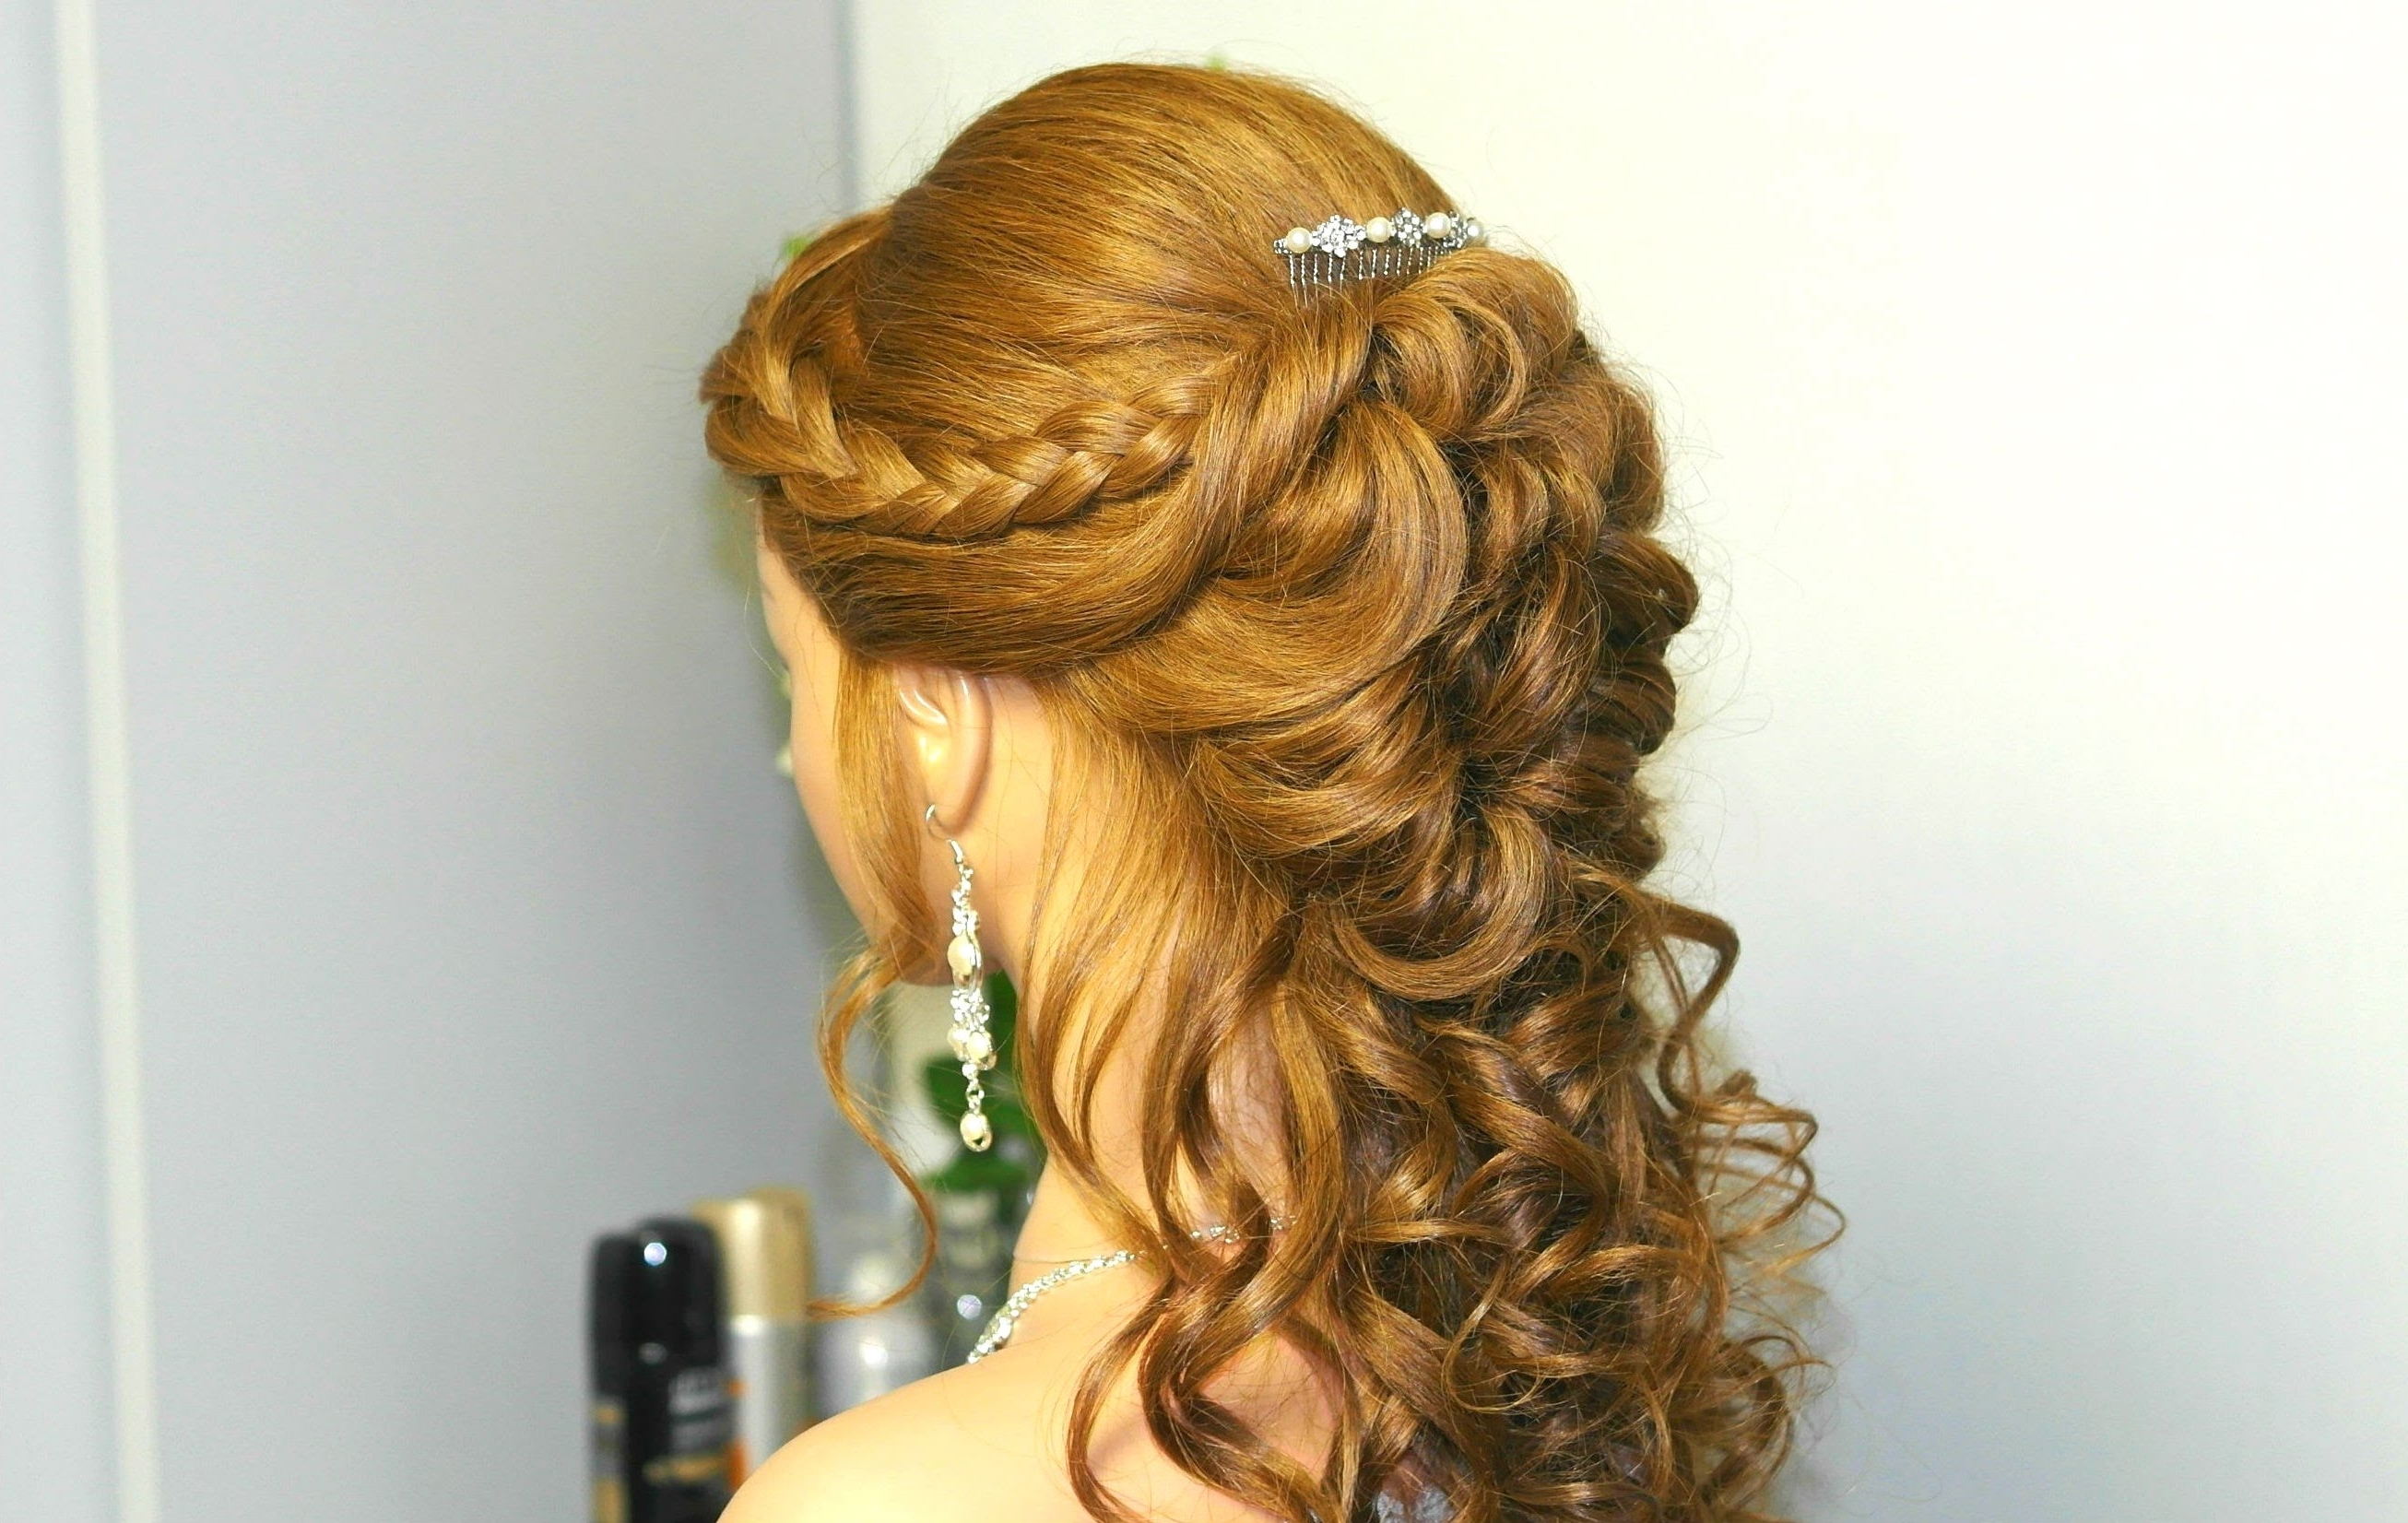 Well Liked French Braid Hairstyles With Curls Intended For Curly Prom Hairstyle For Long Hair With French Braids (View 15 of 15)